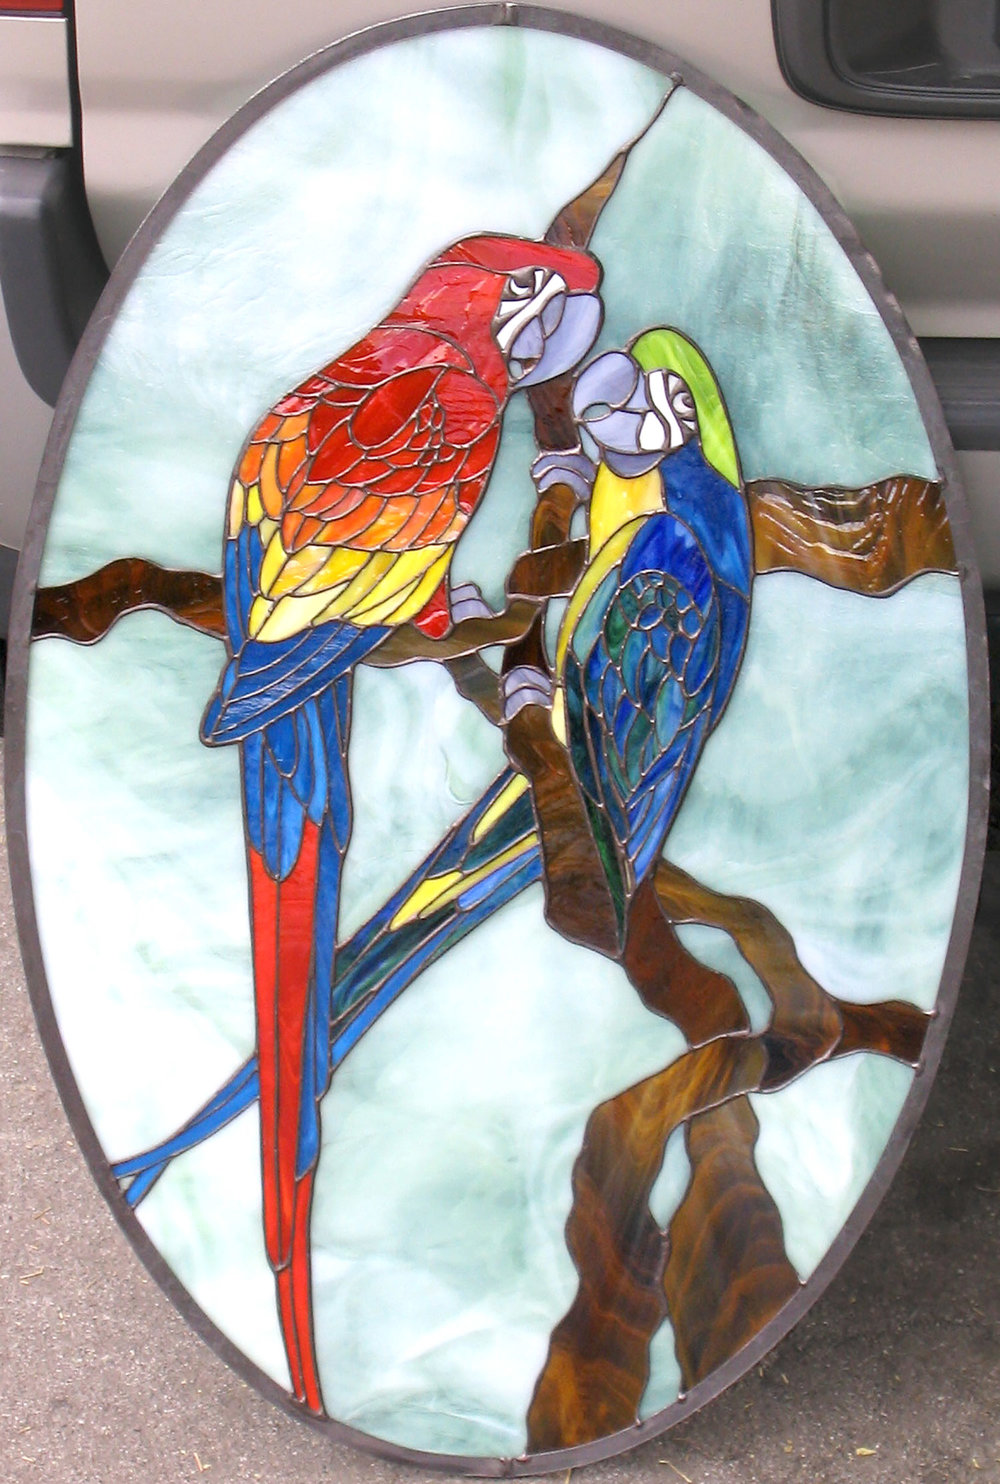 parrot bird leaded glass stained glass studio palo alto atherton california san francisco san jose legacy glass.jpg